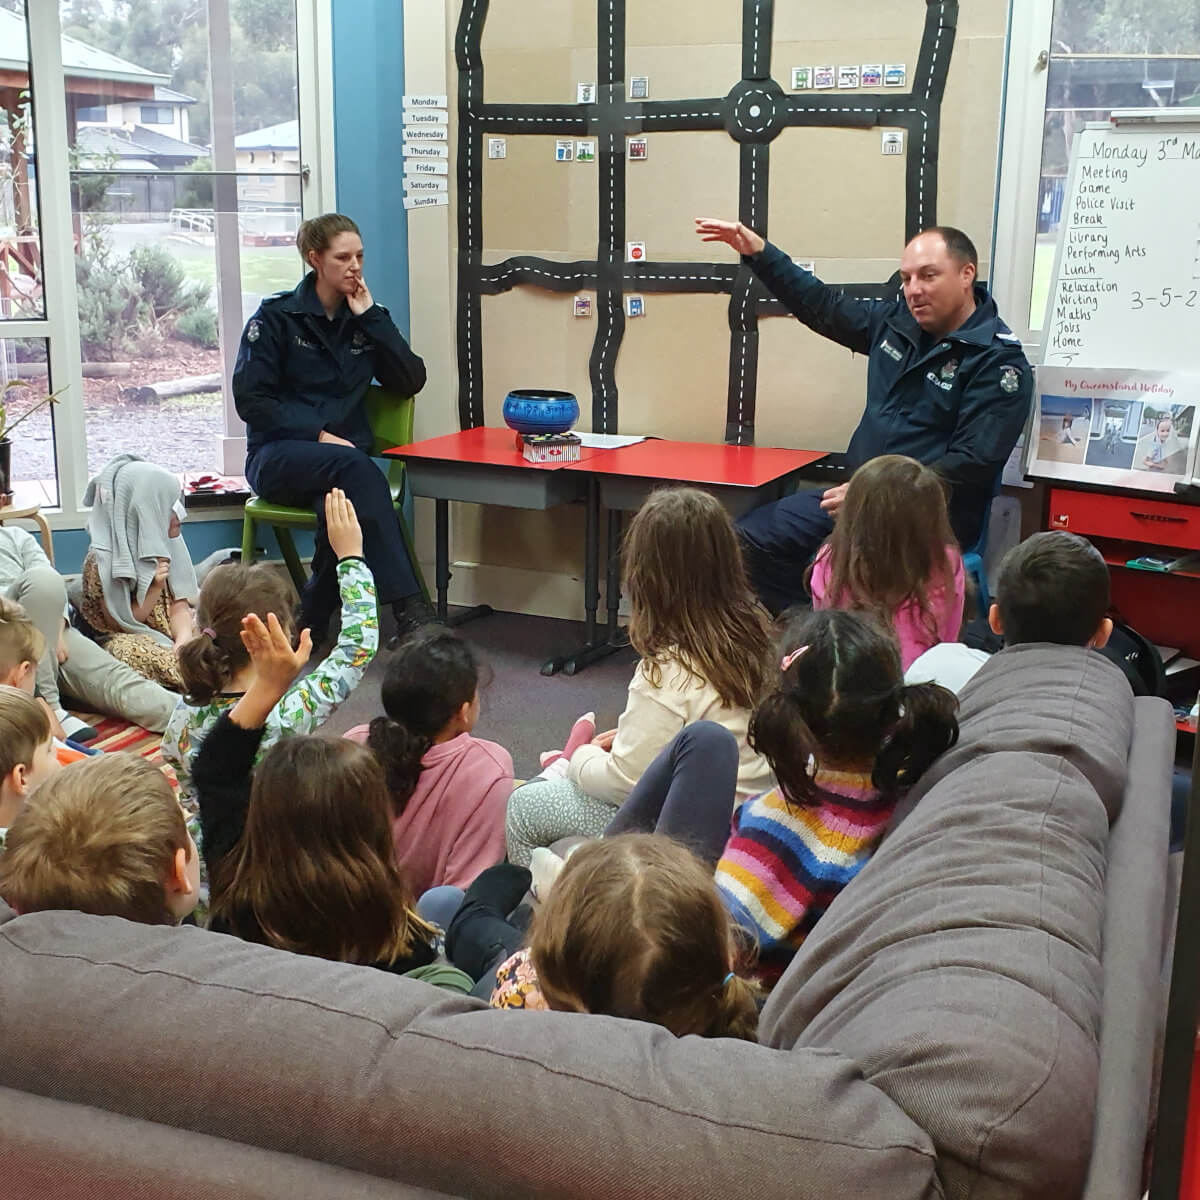 Our Community - A visit from the police